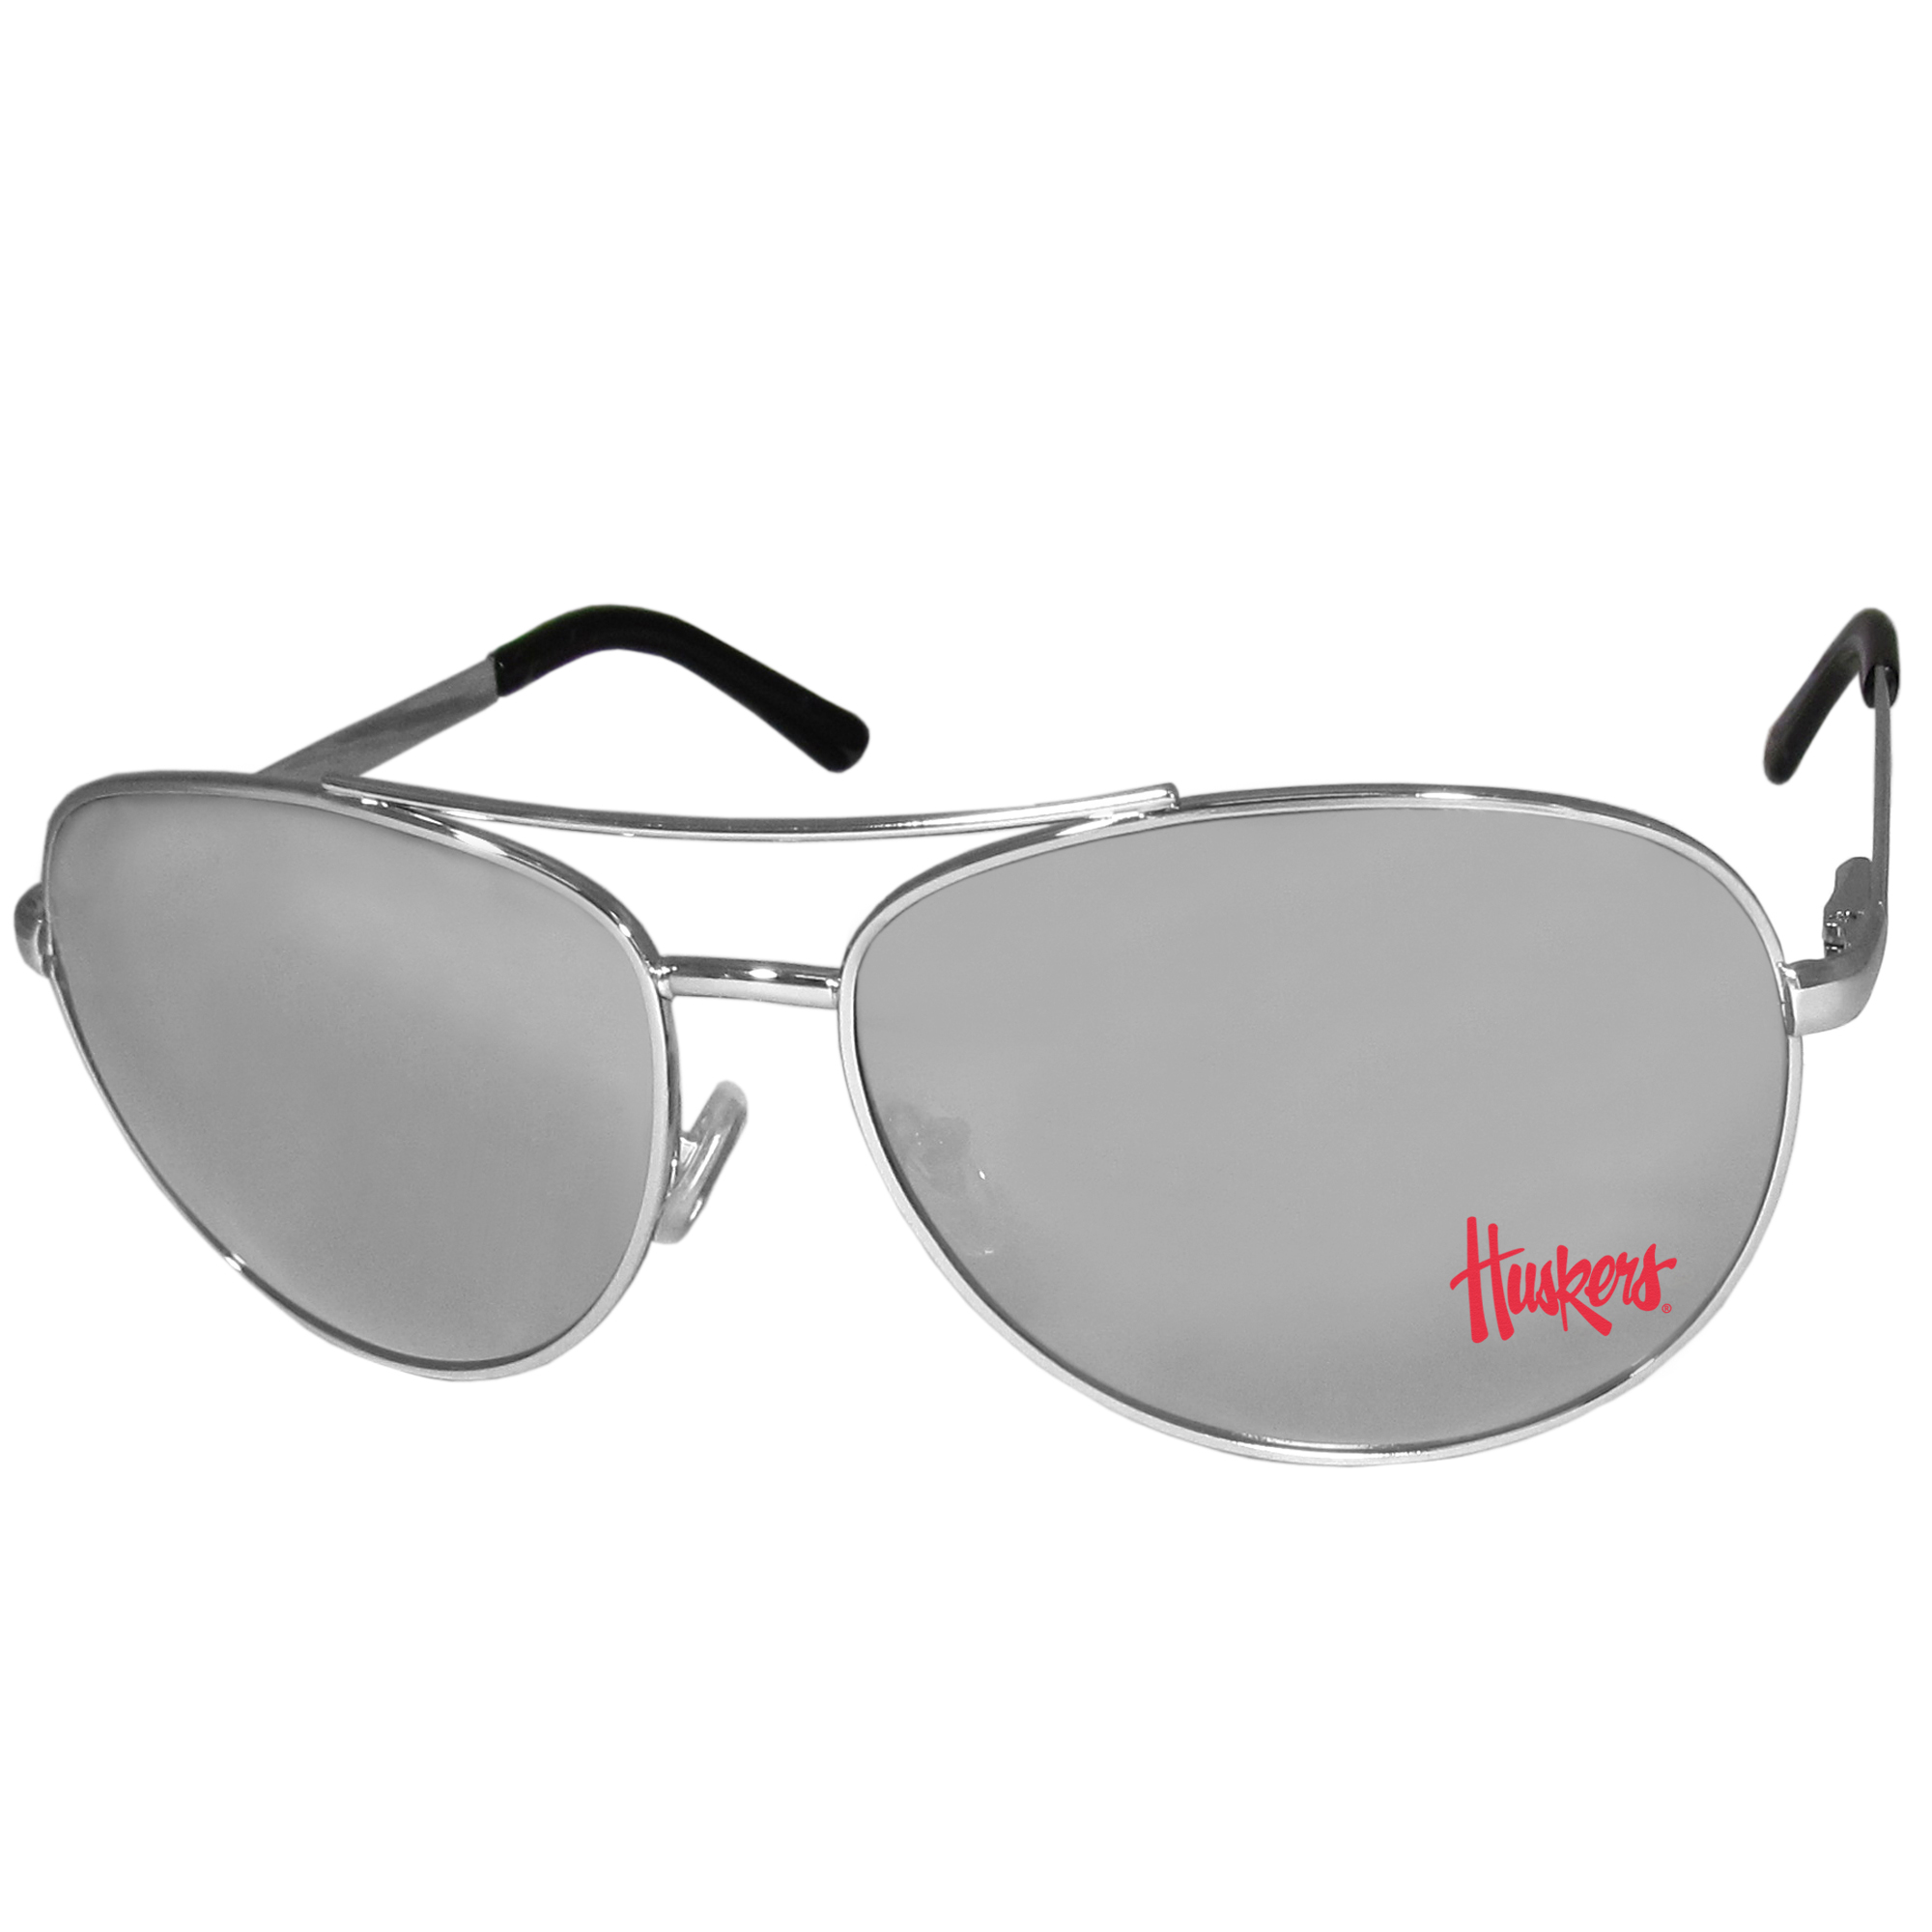 Nebraska Cornhuskers Aviator Sunglasses - Our aviator sunglasses have the iconic aviator style with mirrored lenses and metal frames. The glasses feature a silk screened Nebraska Cornhuskers logo in the corner of the lense. 100% UVA/UVB protection.